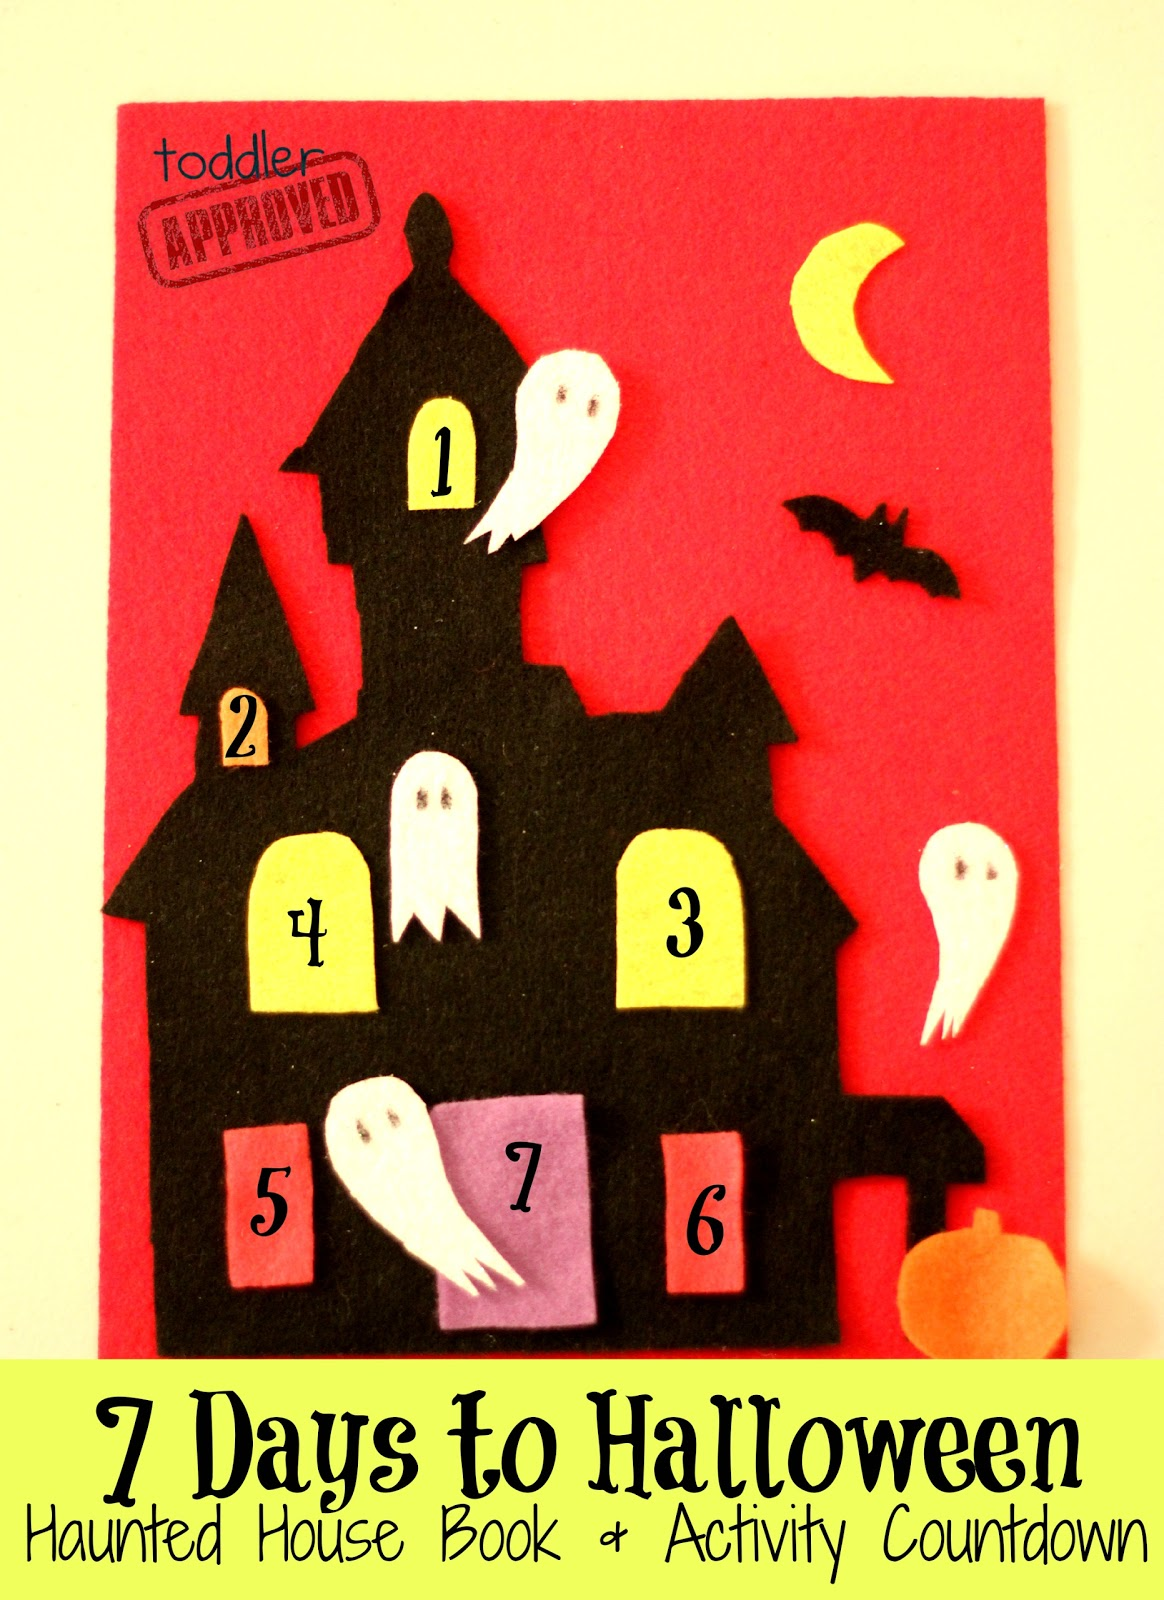 Toddler Approved!: 7 Days to Halloween Haunted House Book & Activity